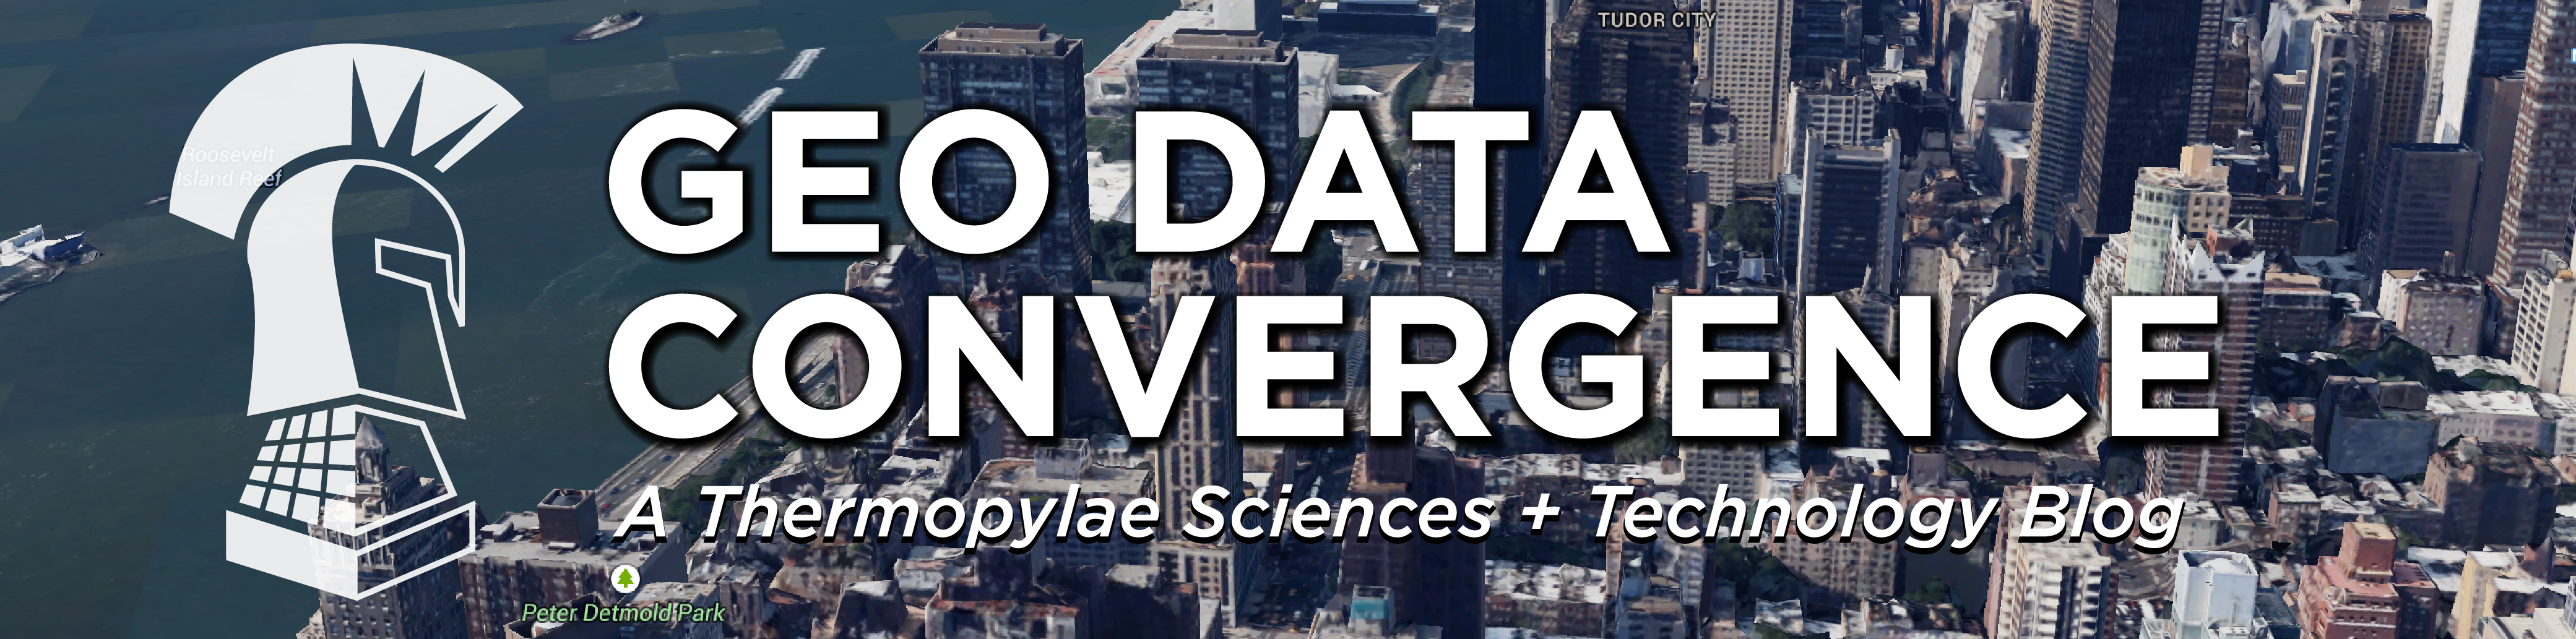 Geo Data Convergence: A Thermopylae Sciences + Technology Blog